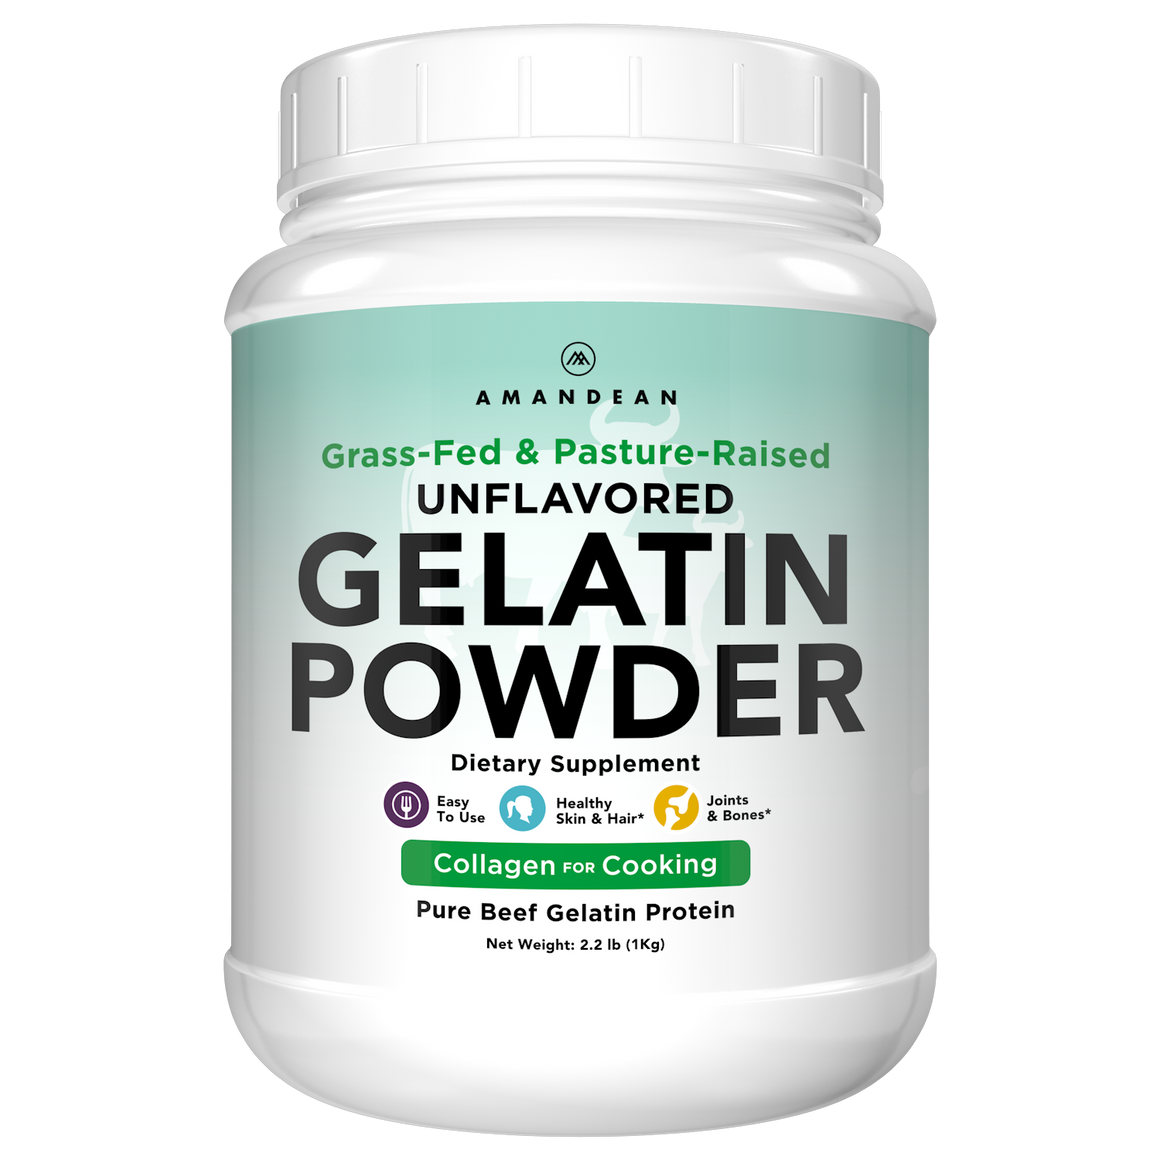 Premium Grass-Fed Gelatin Powder (1kg)